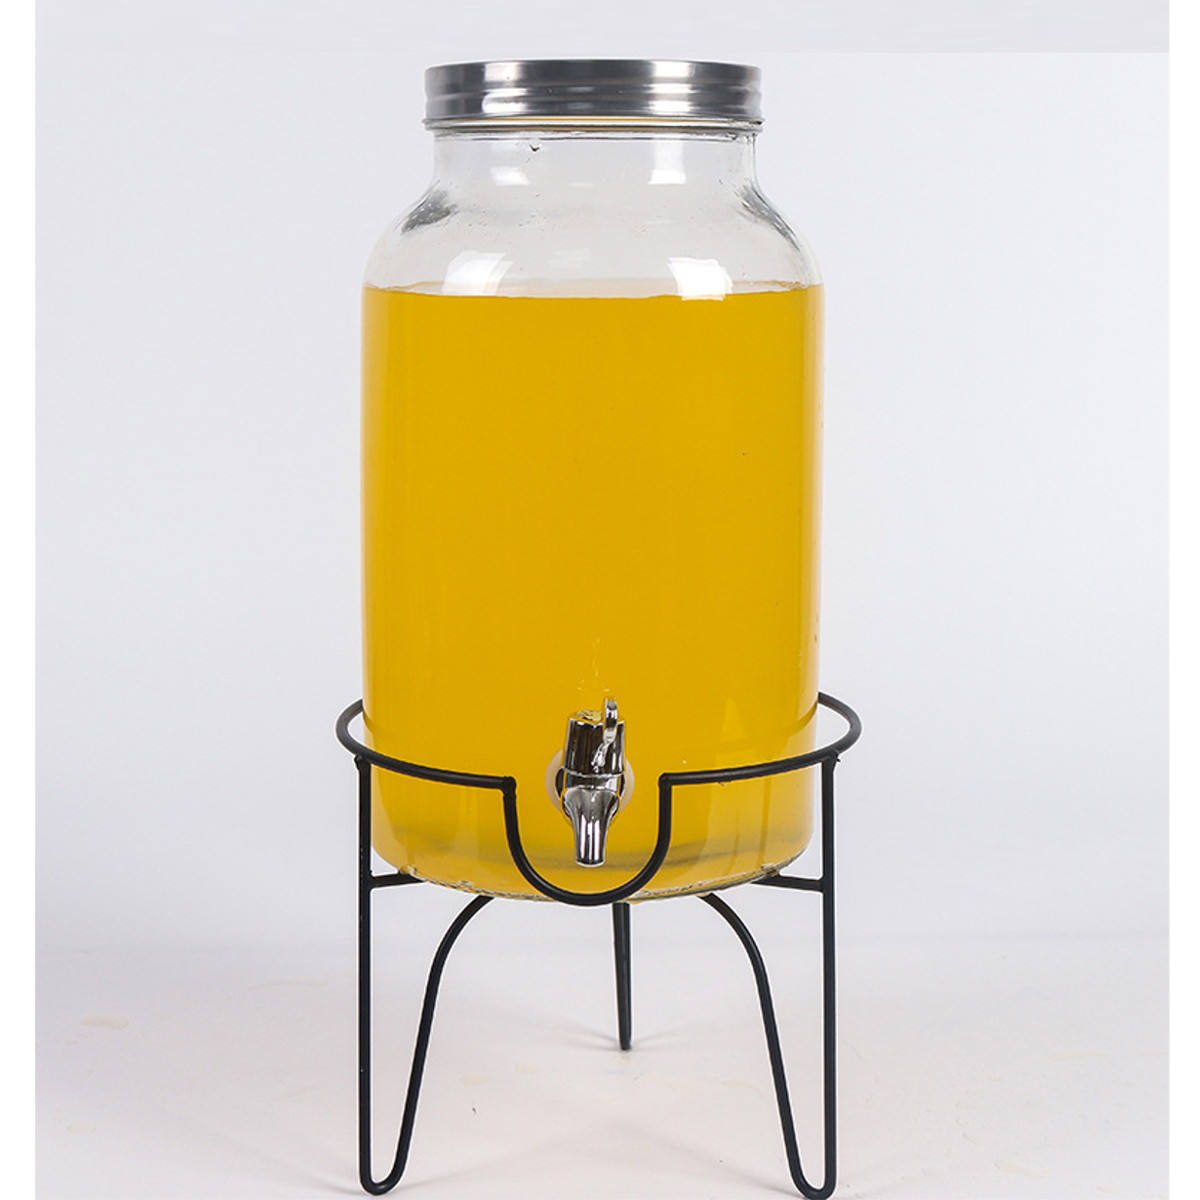 5.5L Drink Beverage Dispenser and Stand Beverage Home Party Water Juice Beer cans Detox Glass Jar With Water Faucet Kitchen Tool